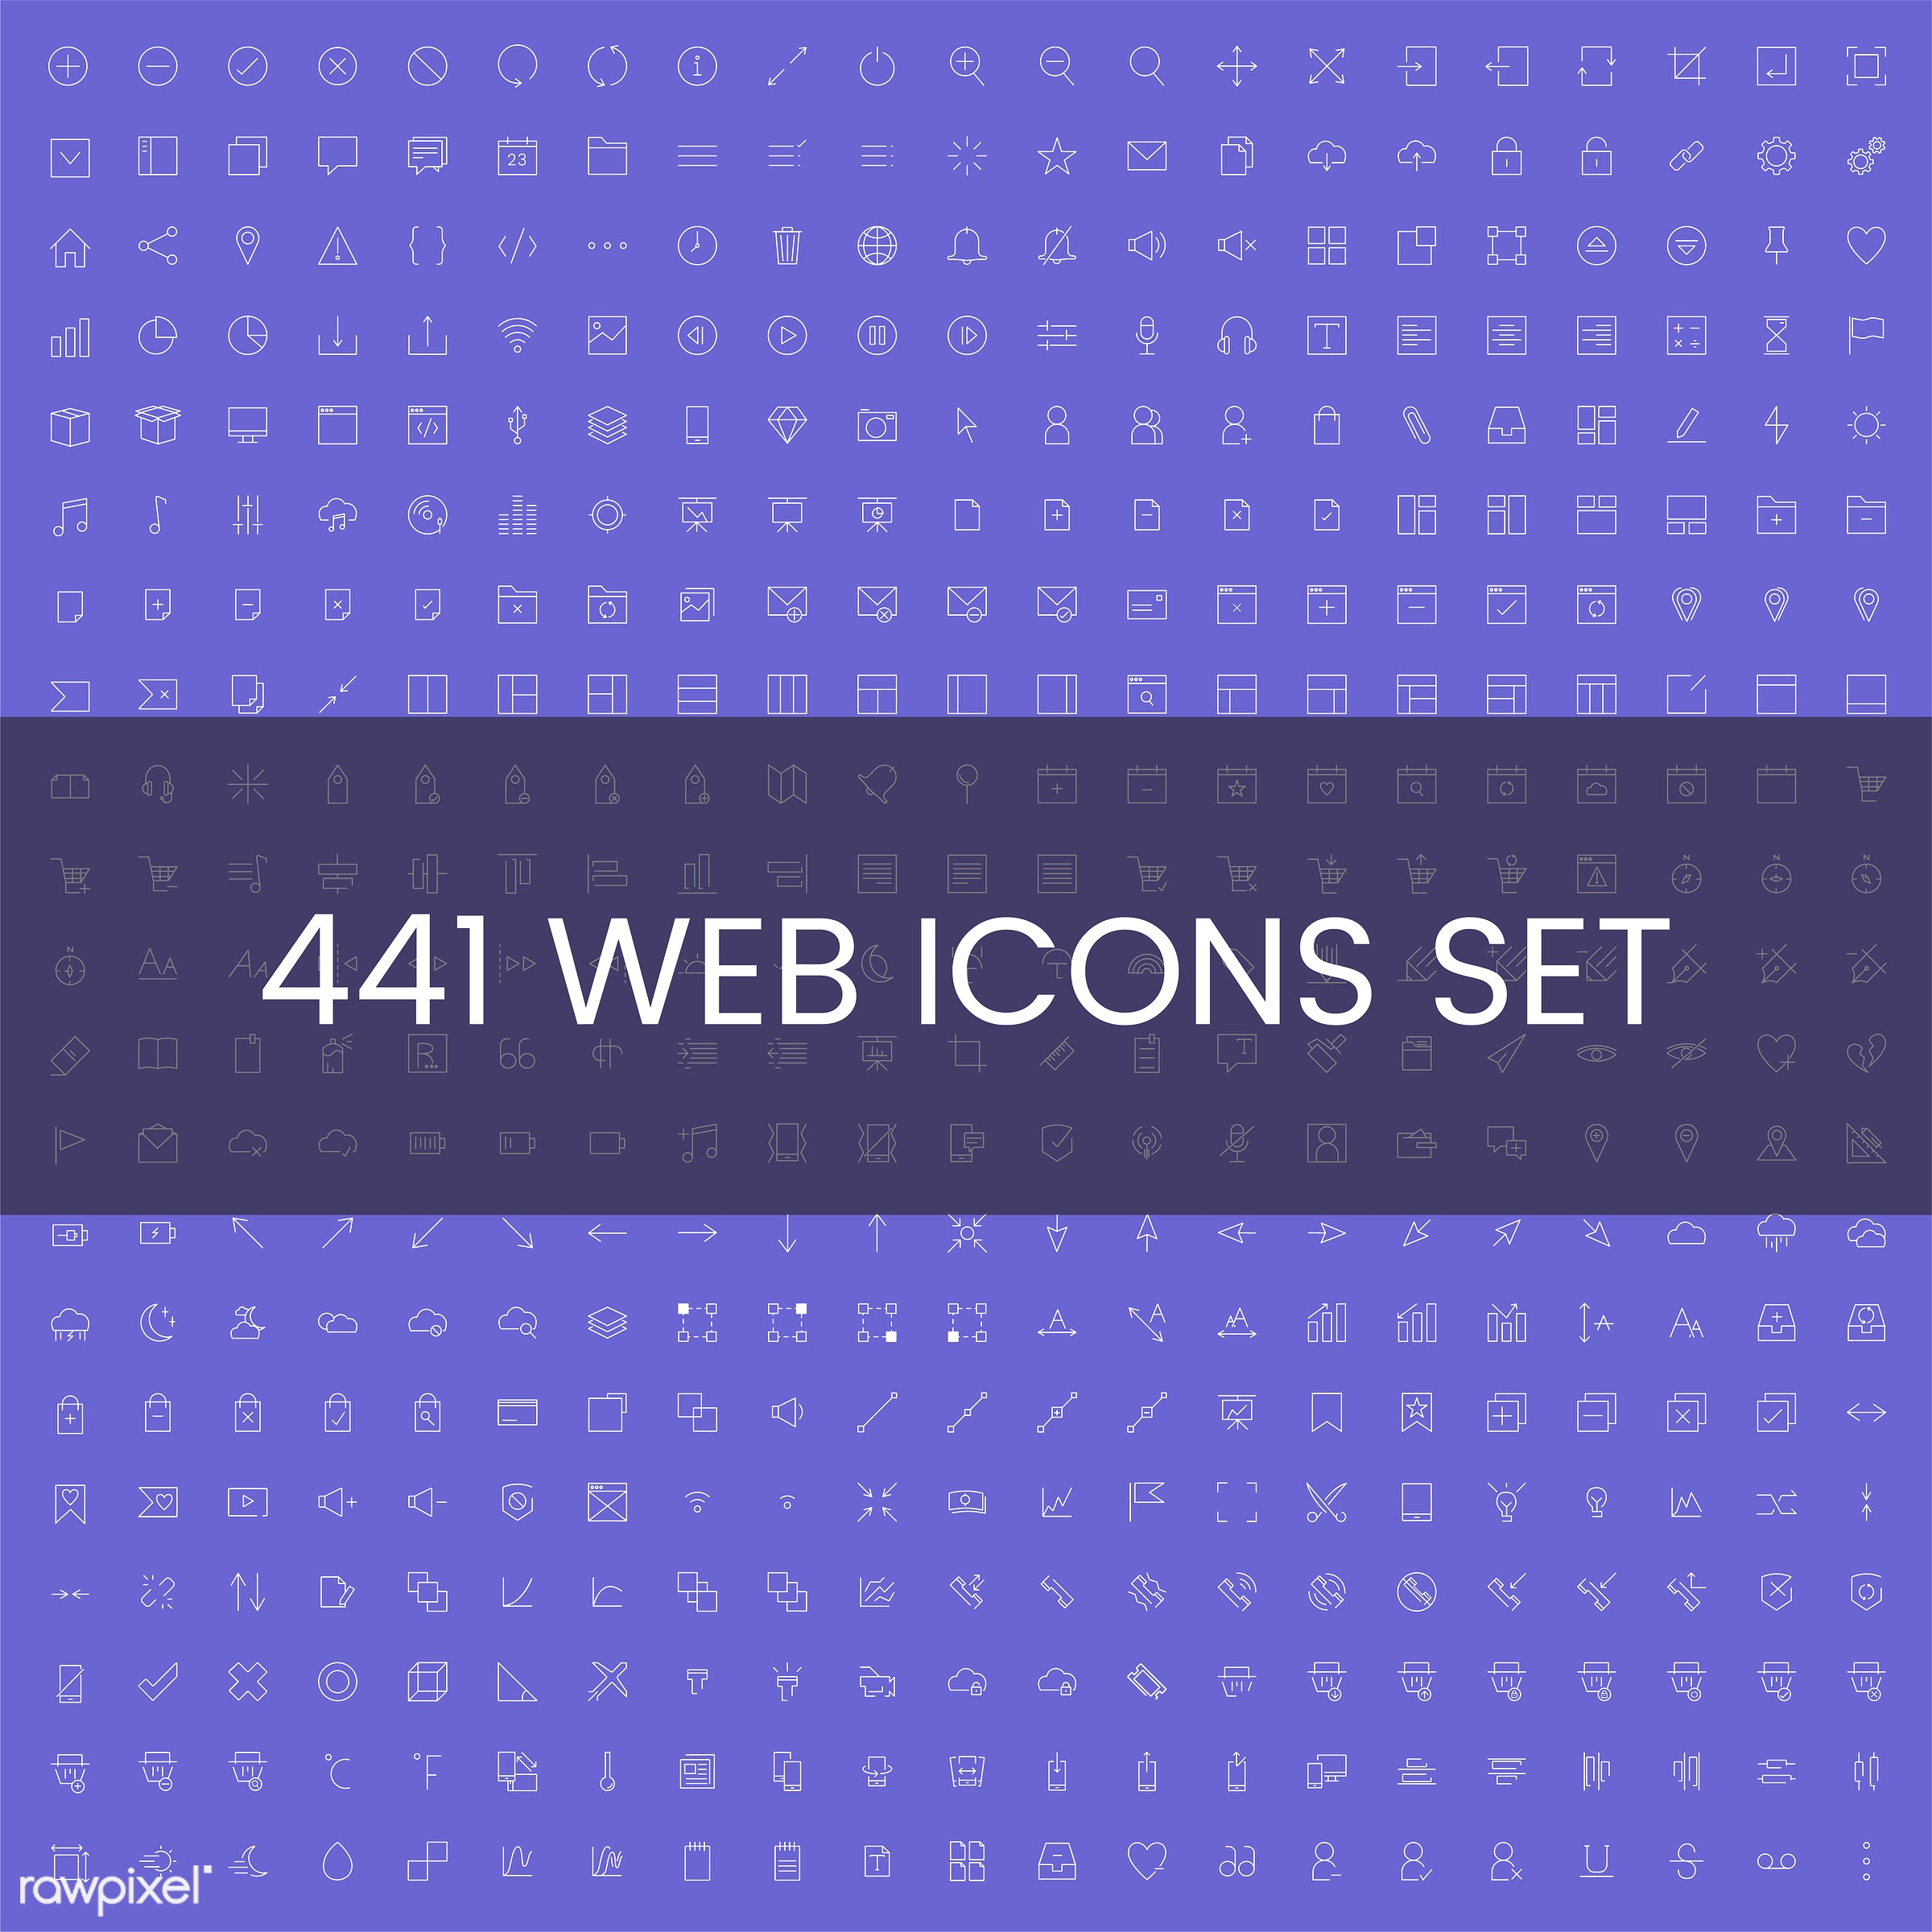 Set of computer icon vectors - collection, set, vector, illustration, graphic, business, icon, symbol, digital, email,...